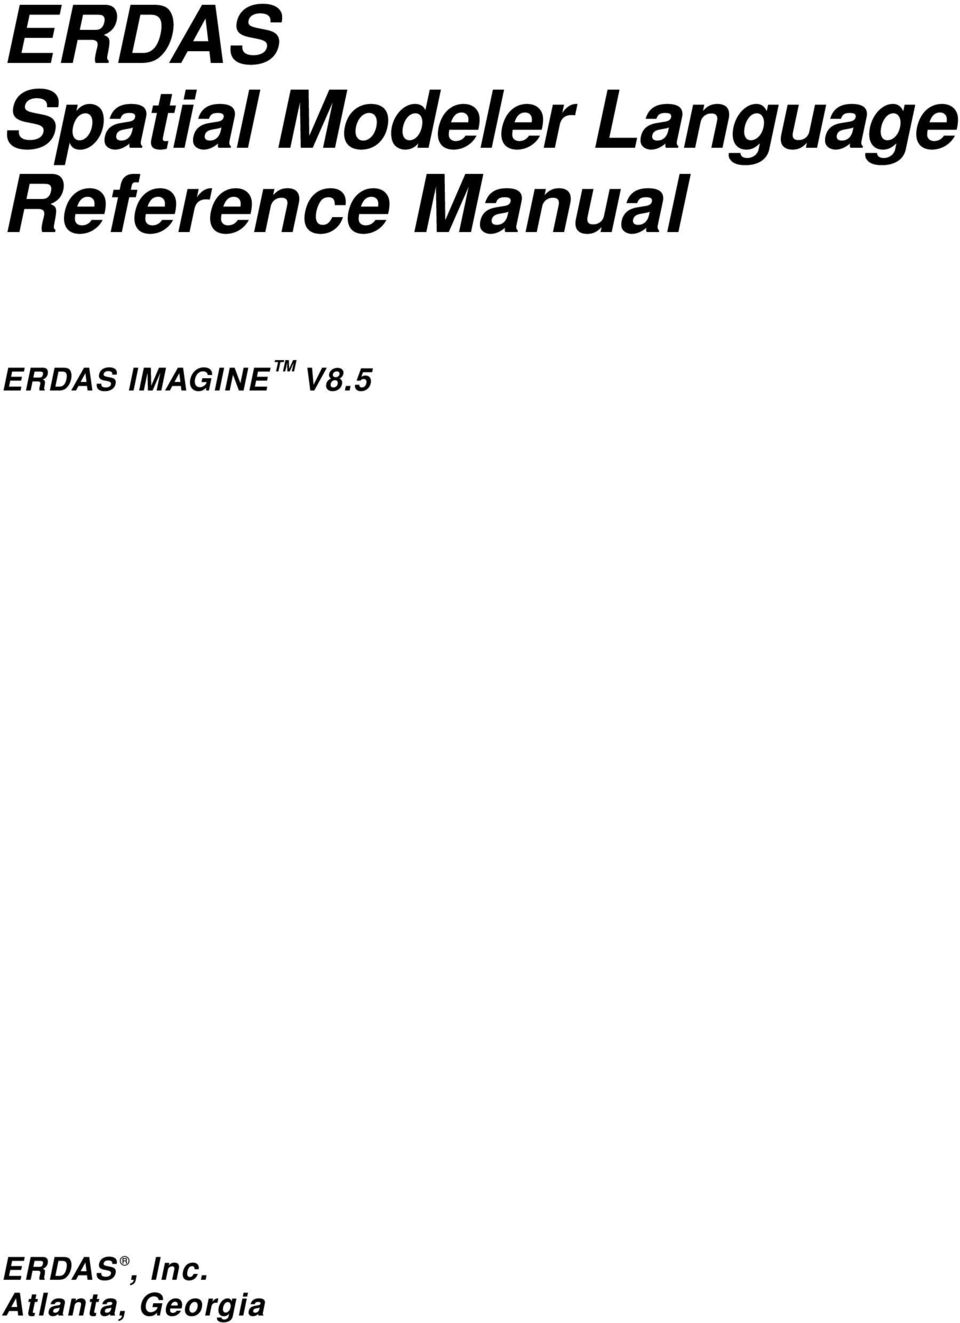 Manual ERDAS IMAGINE V8.